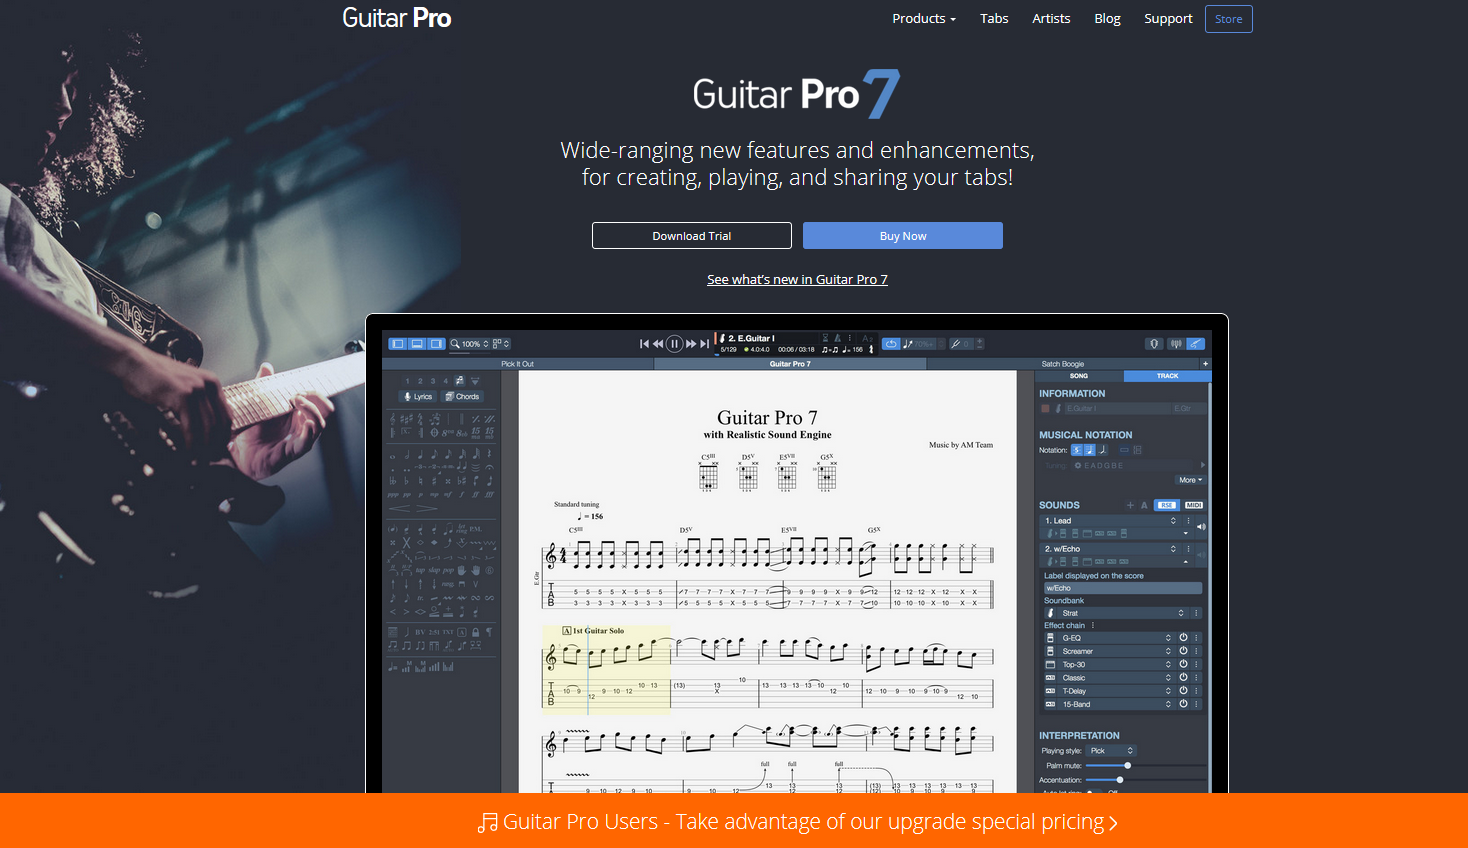 Guitar Pro 7 Home Page